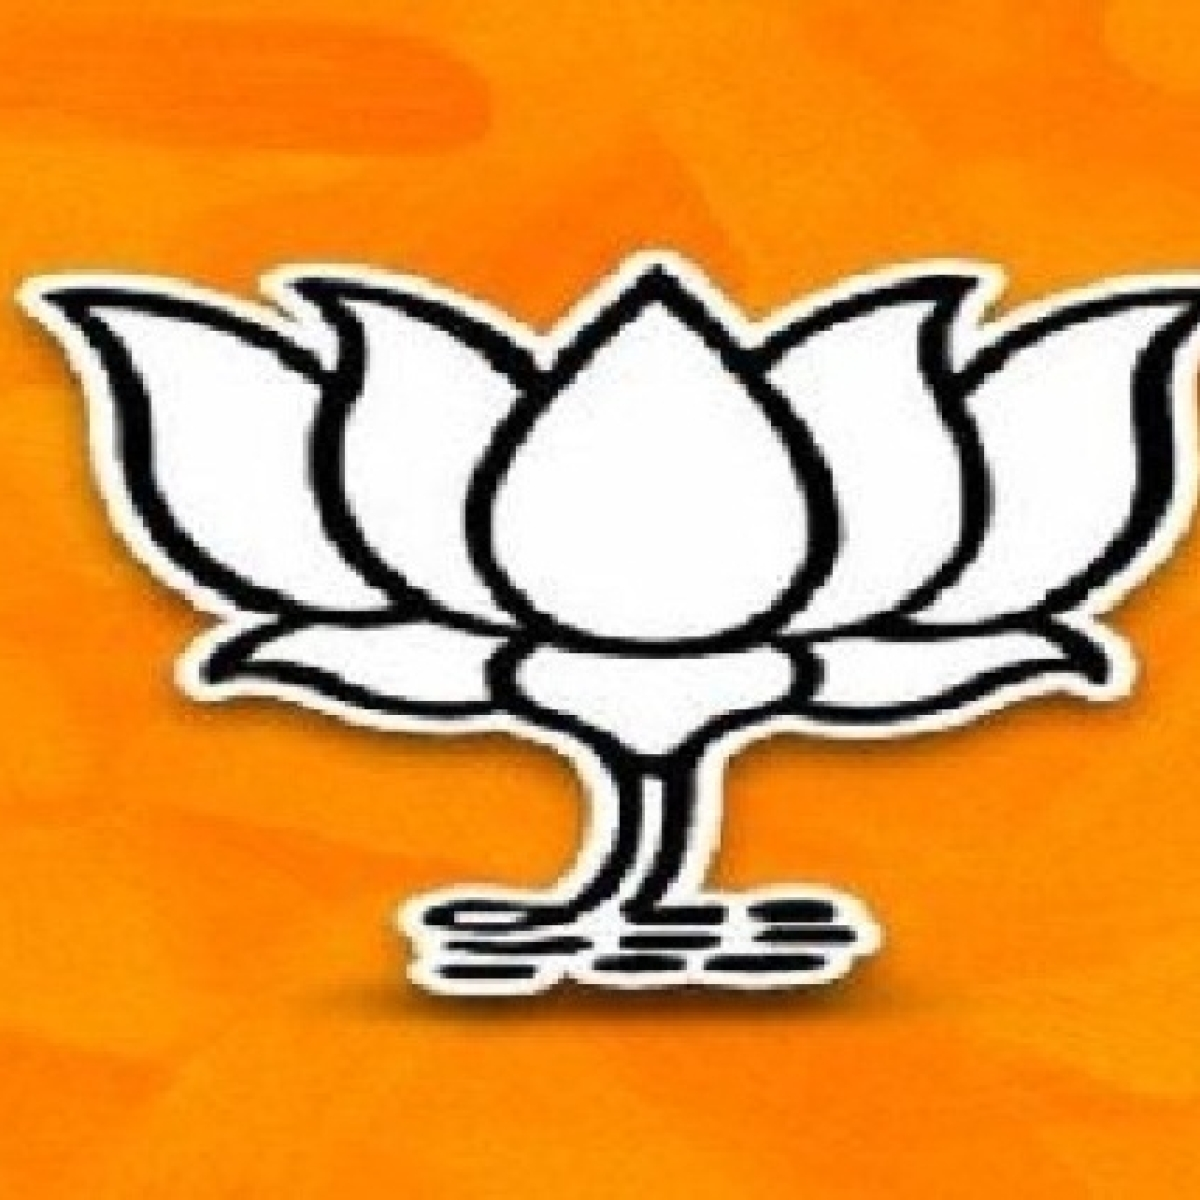 Indore: Only 22 BJP mandals out of 28 to be formed